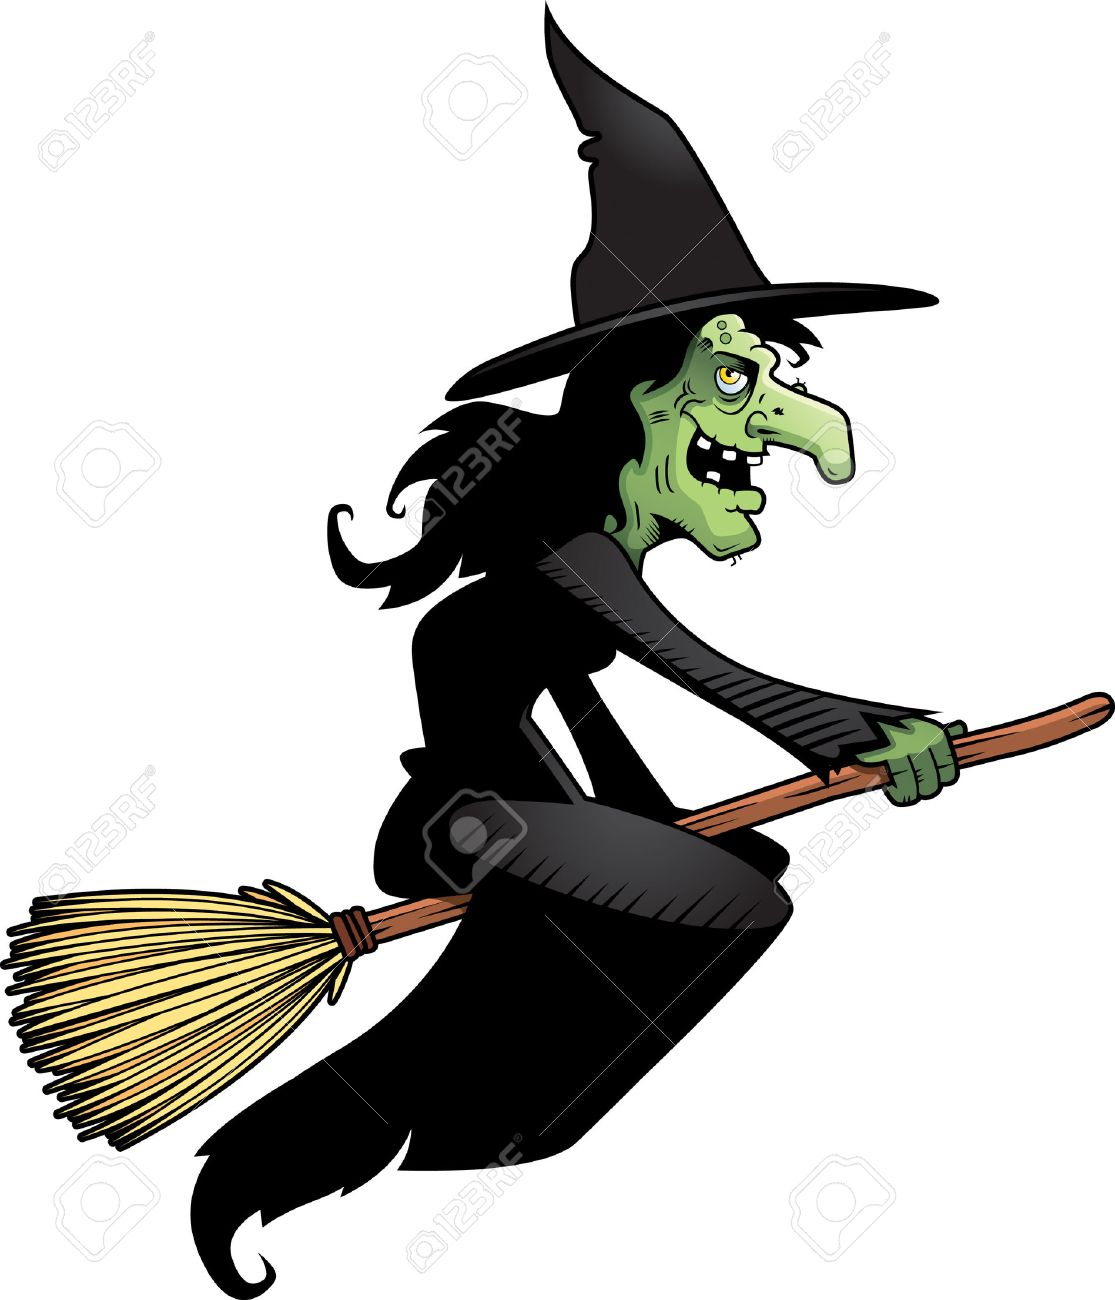 a cartoon witch flying